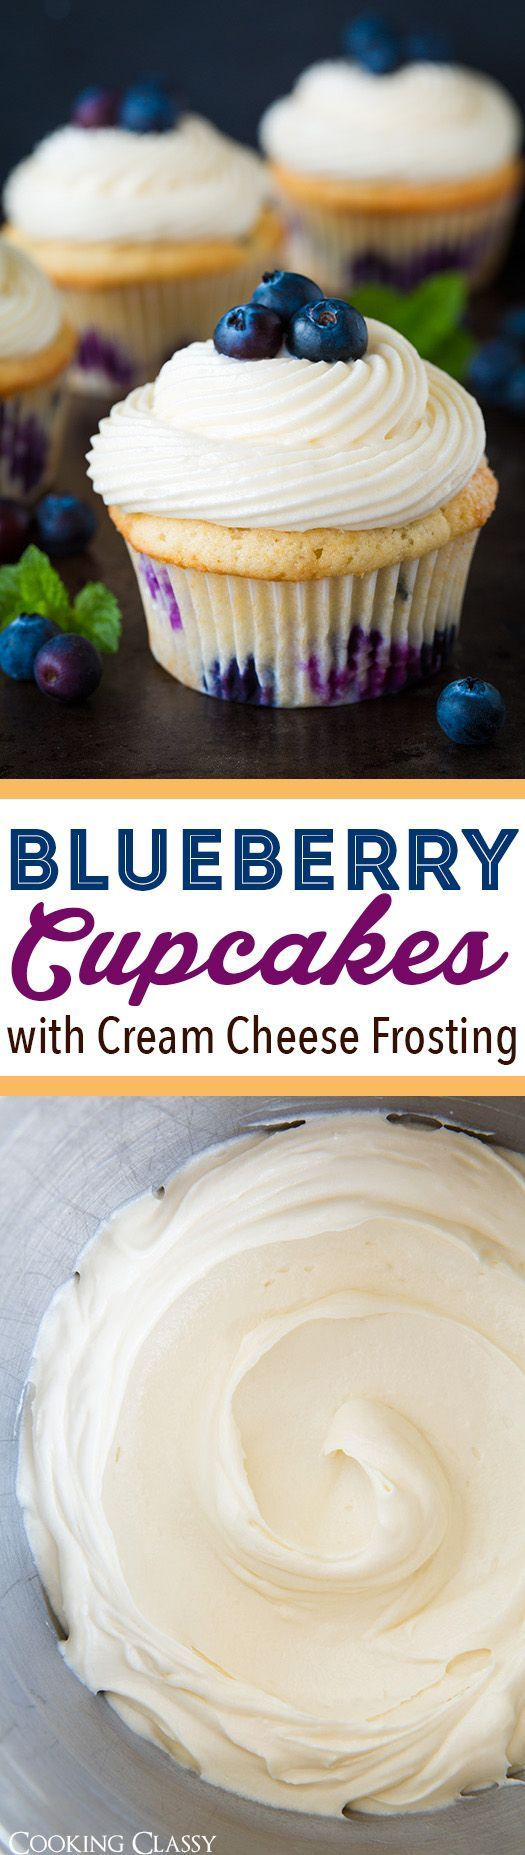 Blueberry Cupcakes with Cream Cheese Frosting - perfect use for fresh summer blueberries! Light and fluffy and amazingly delicious!